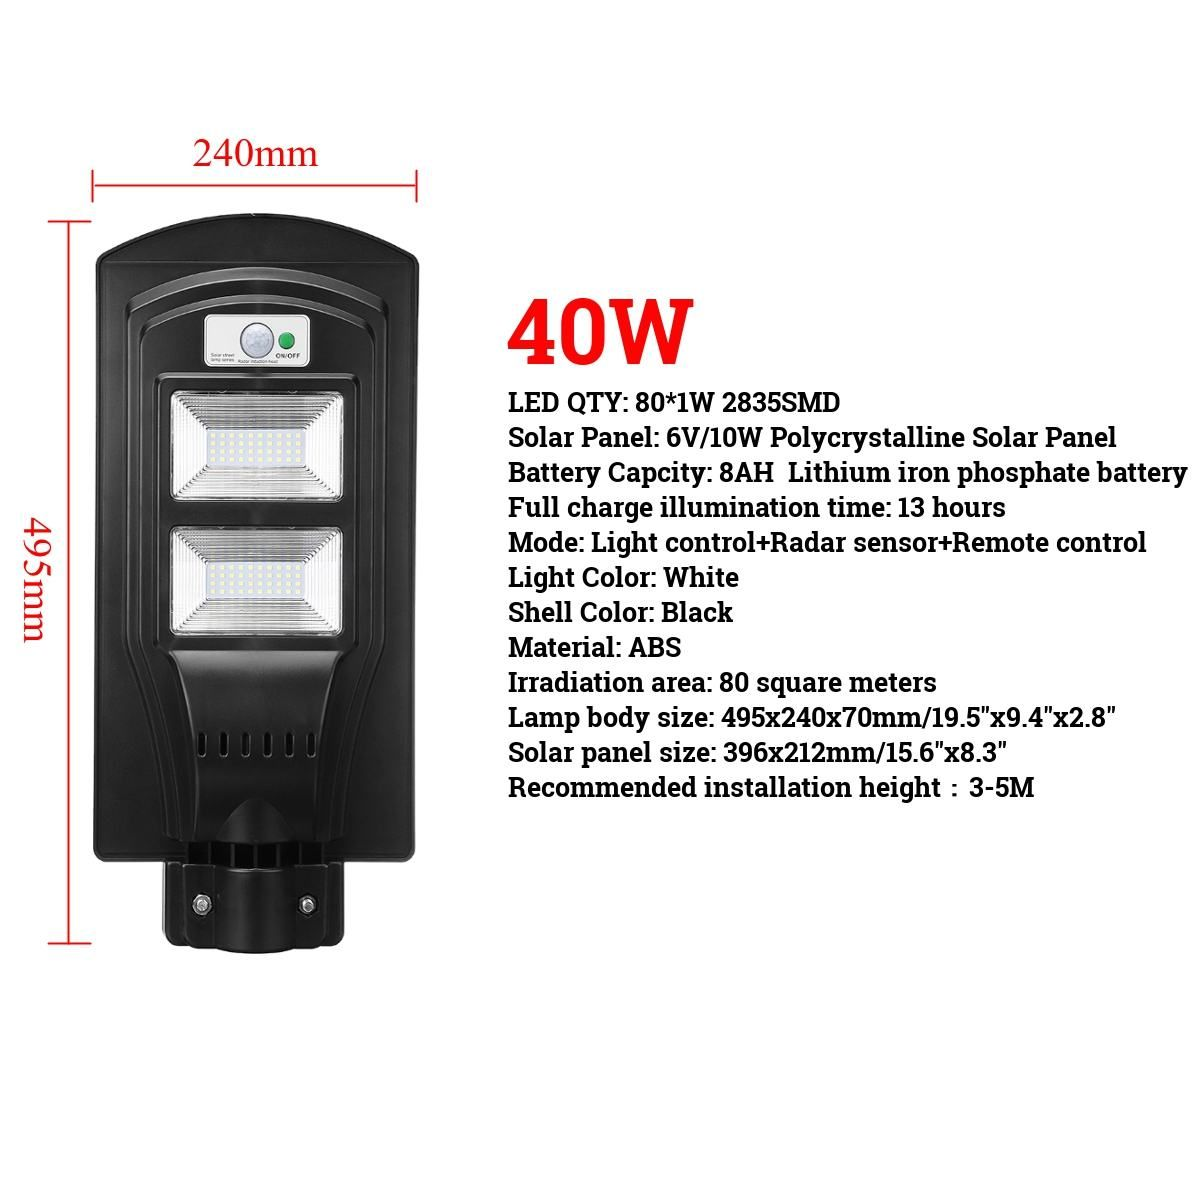 40/60/90W LED Wall Lamp IP65 Solar Street Light Radar motion 2 In 1 Constantly bright & Induction Solar Sensor Remote Control